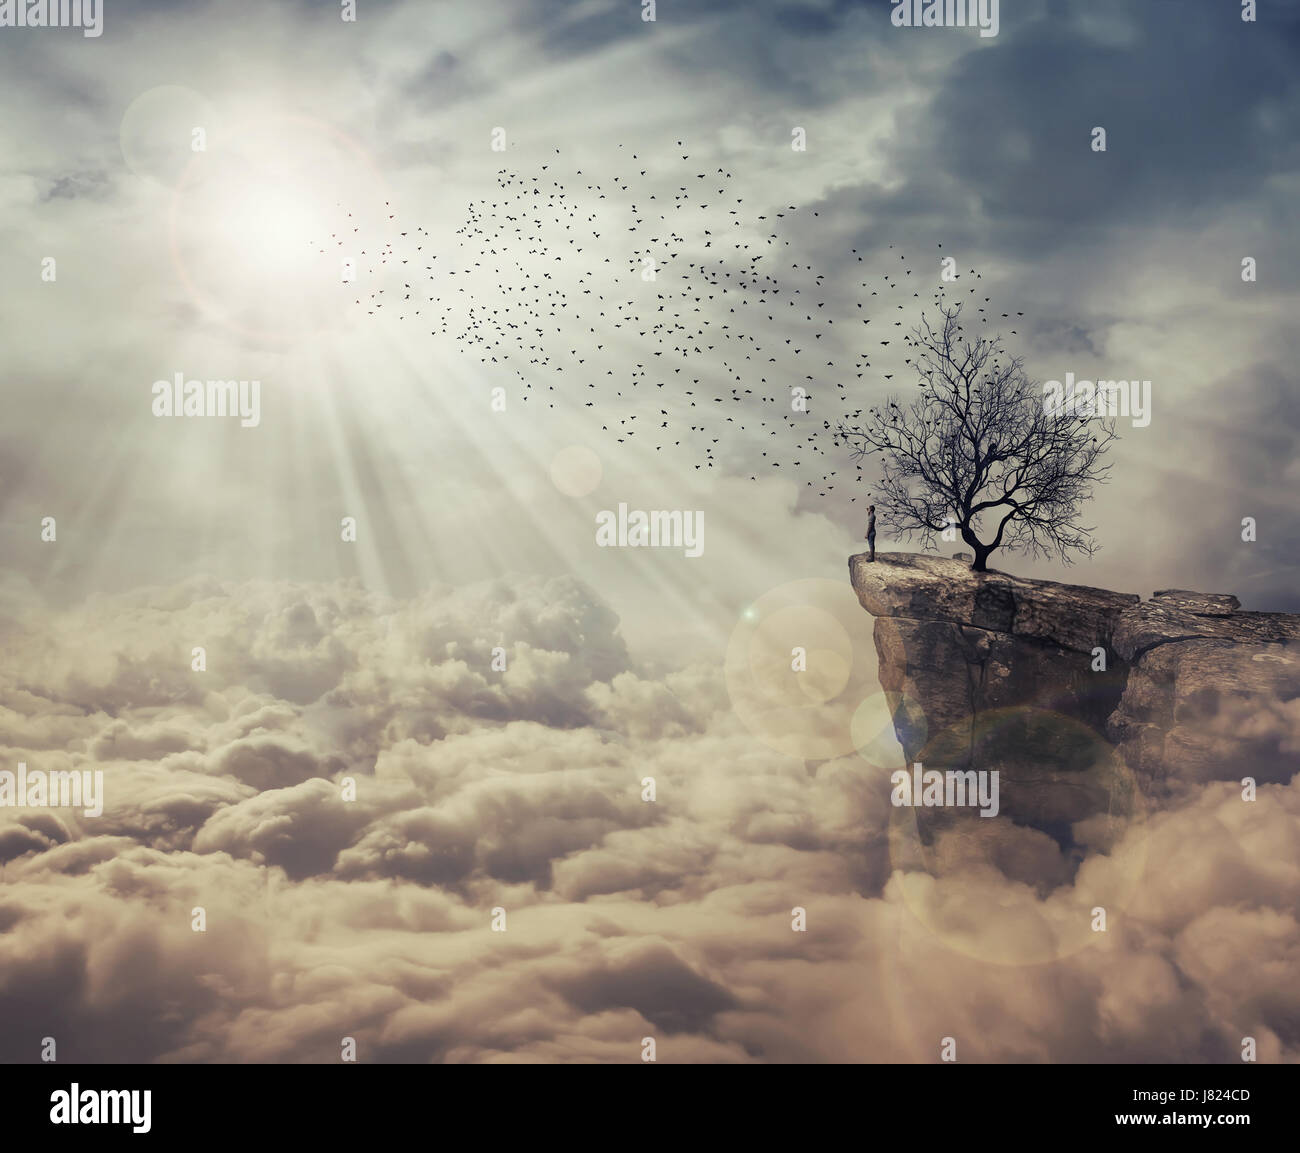 Young man standing on the peak of a cliff over clouds watching at a flock of birds flying from a strange, bare tree. Stock Photo